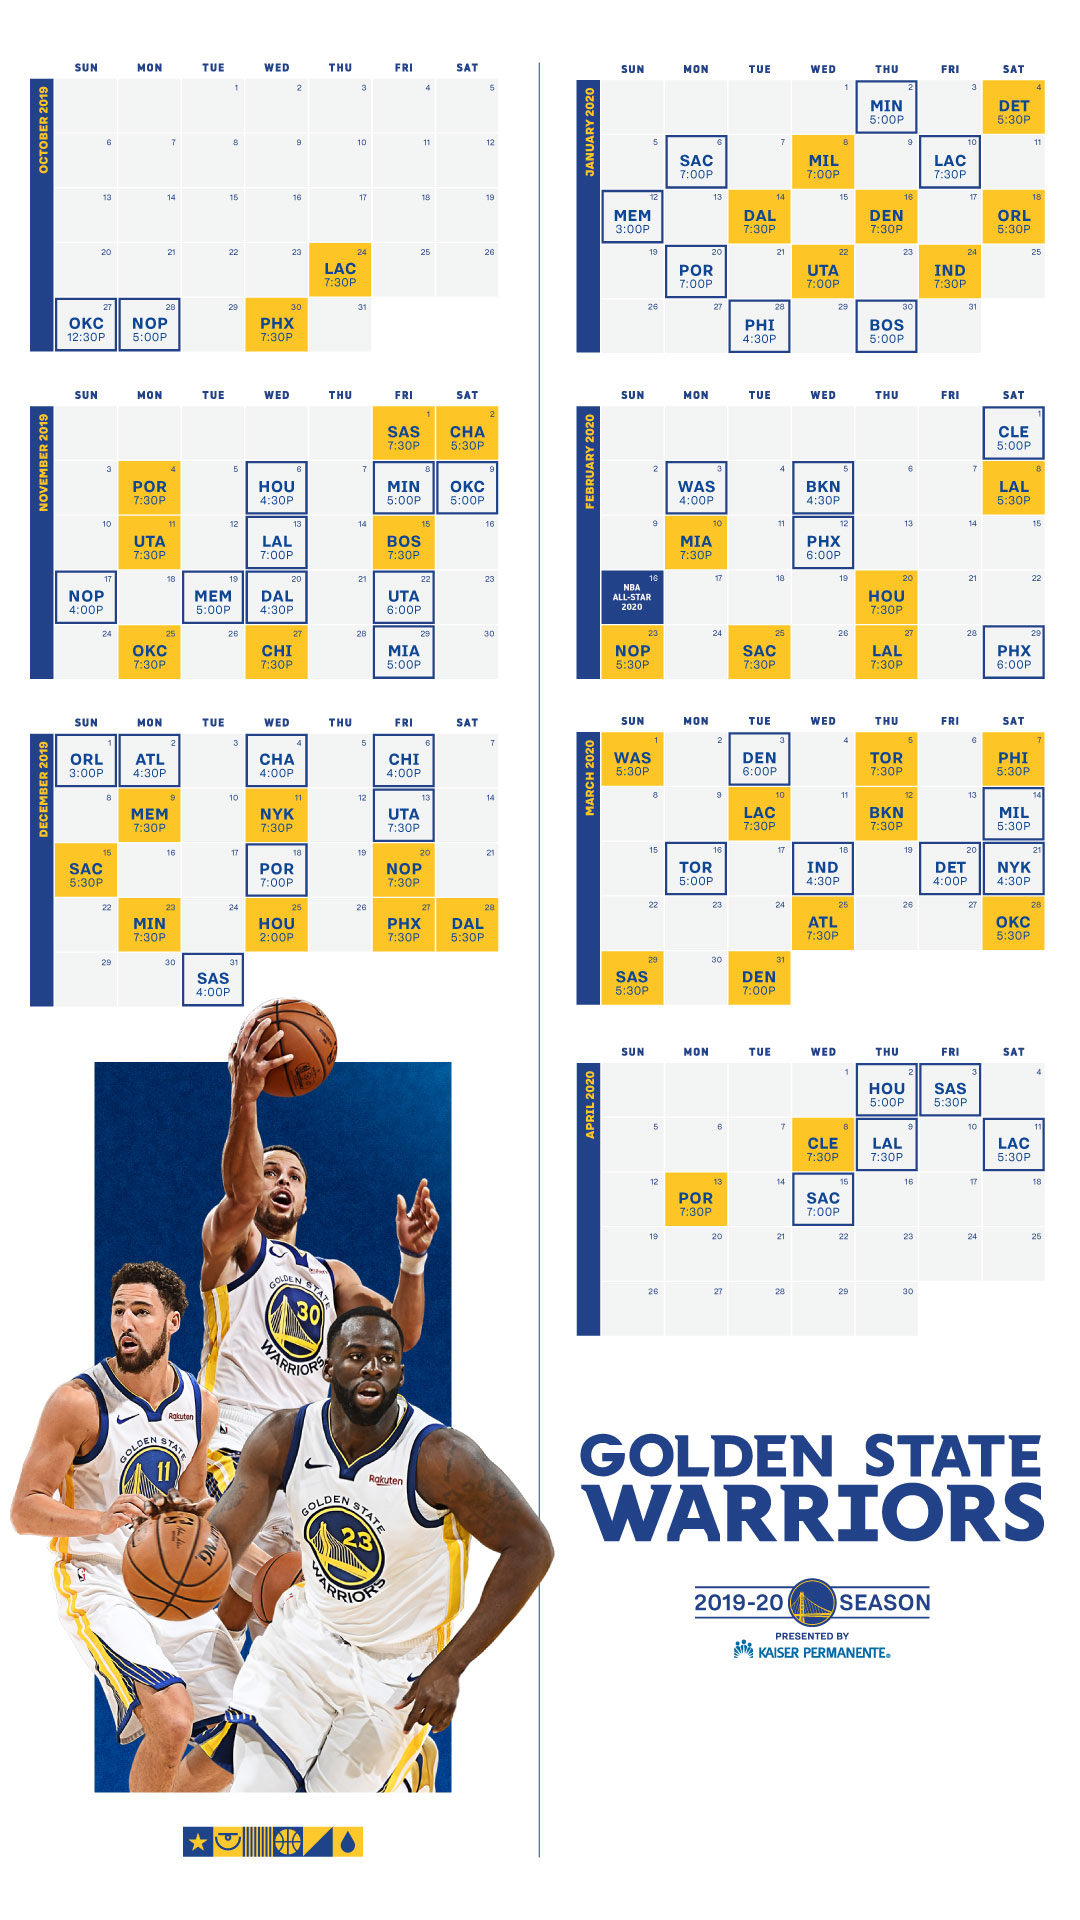 Golden State Warriors GSW Schedule 2019-20 NBA Season